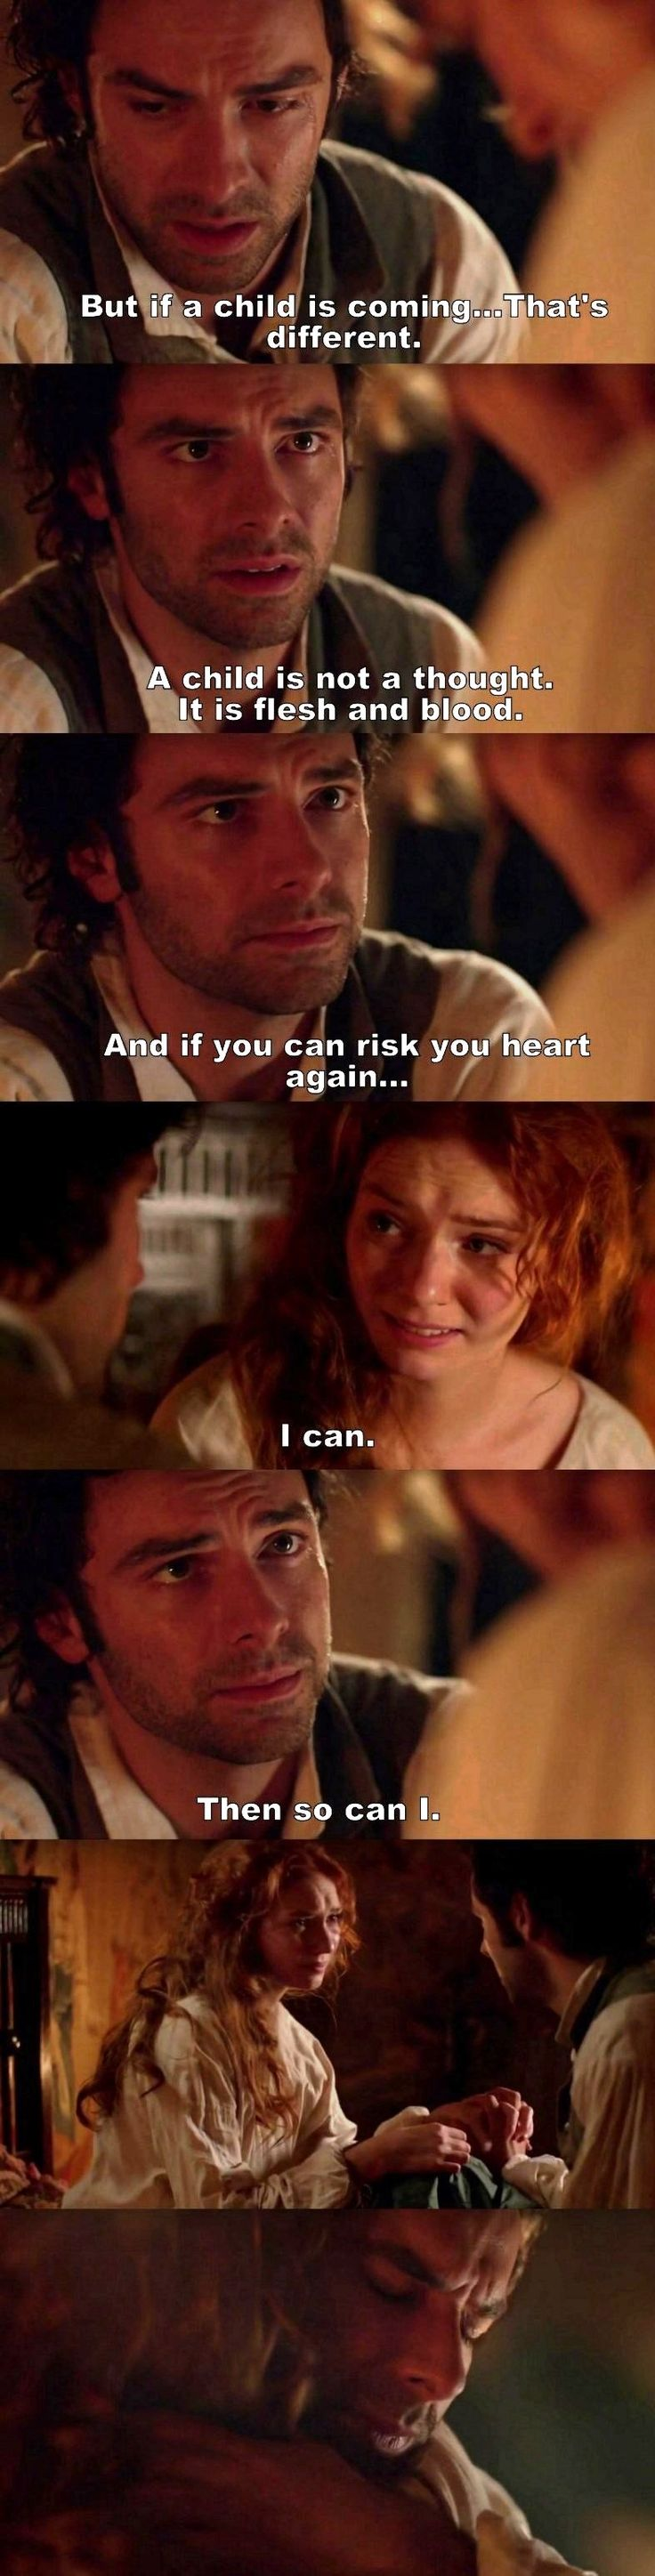 """""""A child is not a thought. It is flesh and blood. And if you can risk your heart again..."""" - Ross and Demelza #Poldark"""